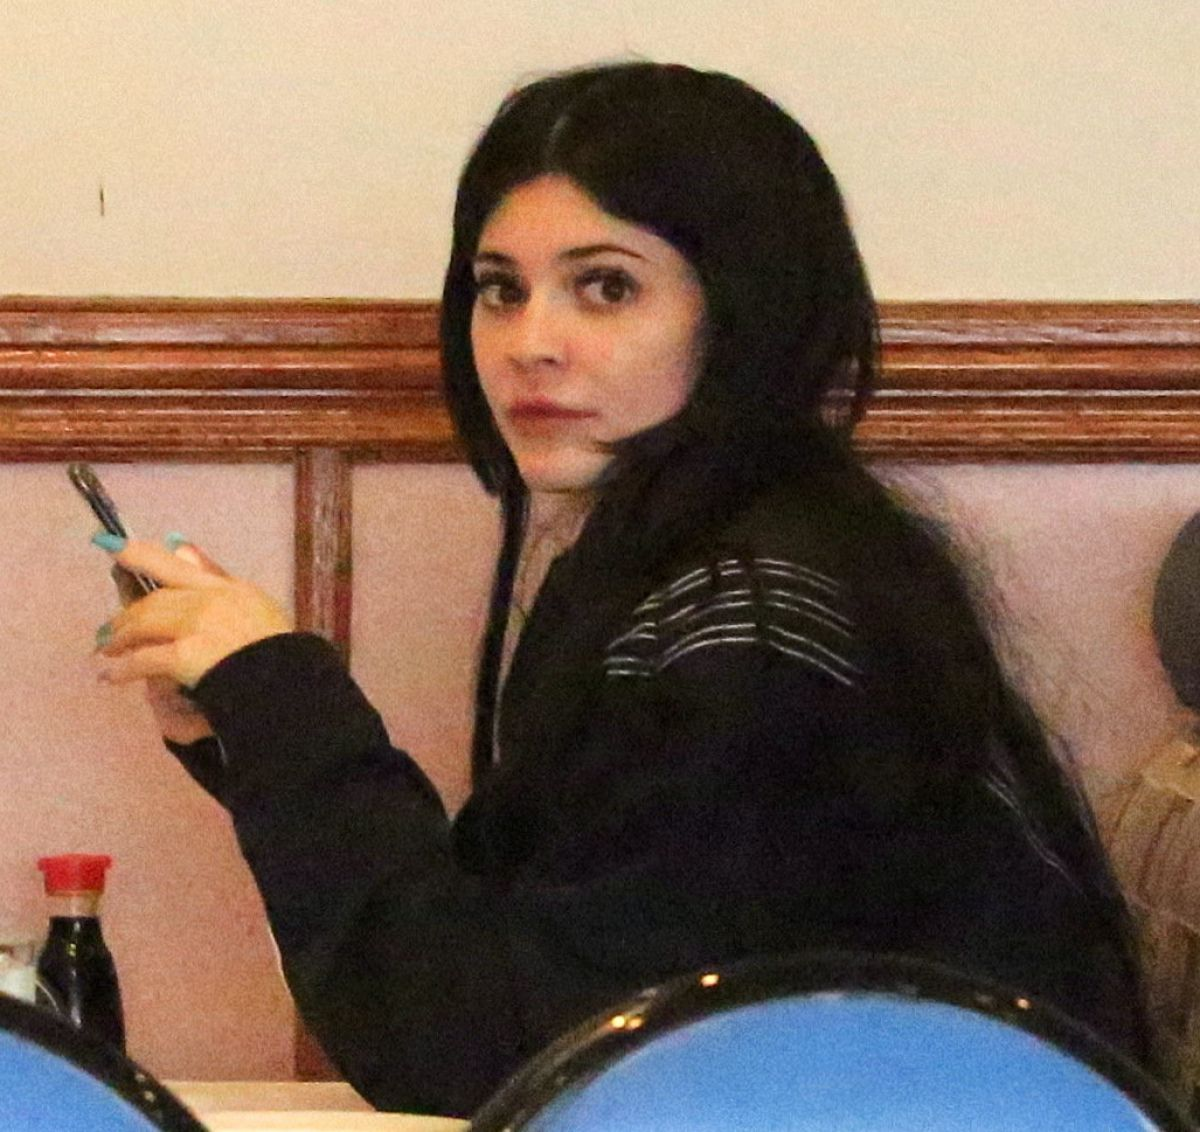 KYLIE JENNER Out for Lunch at Yang Chow Restaurant in Los Angeles 03/04/2017